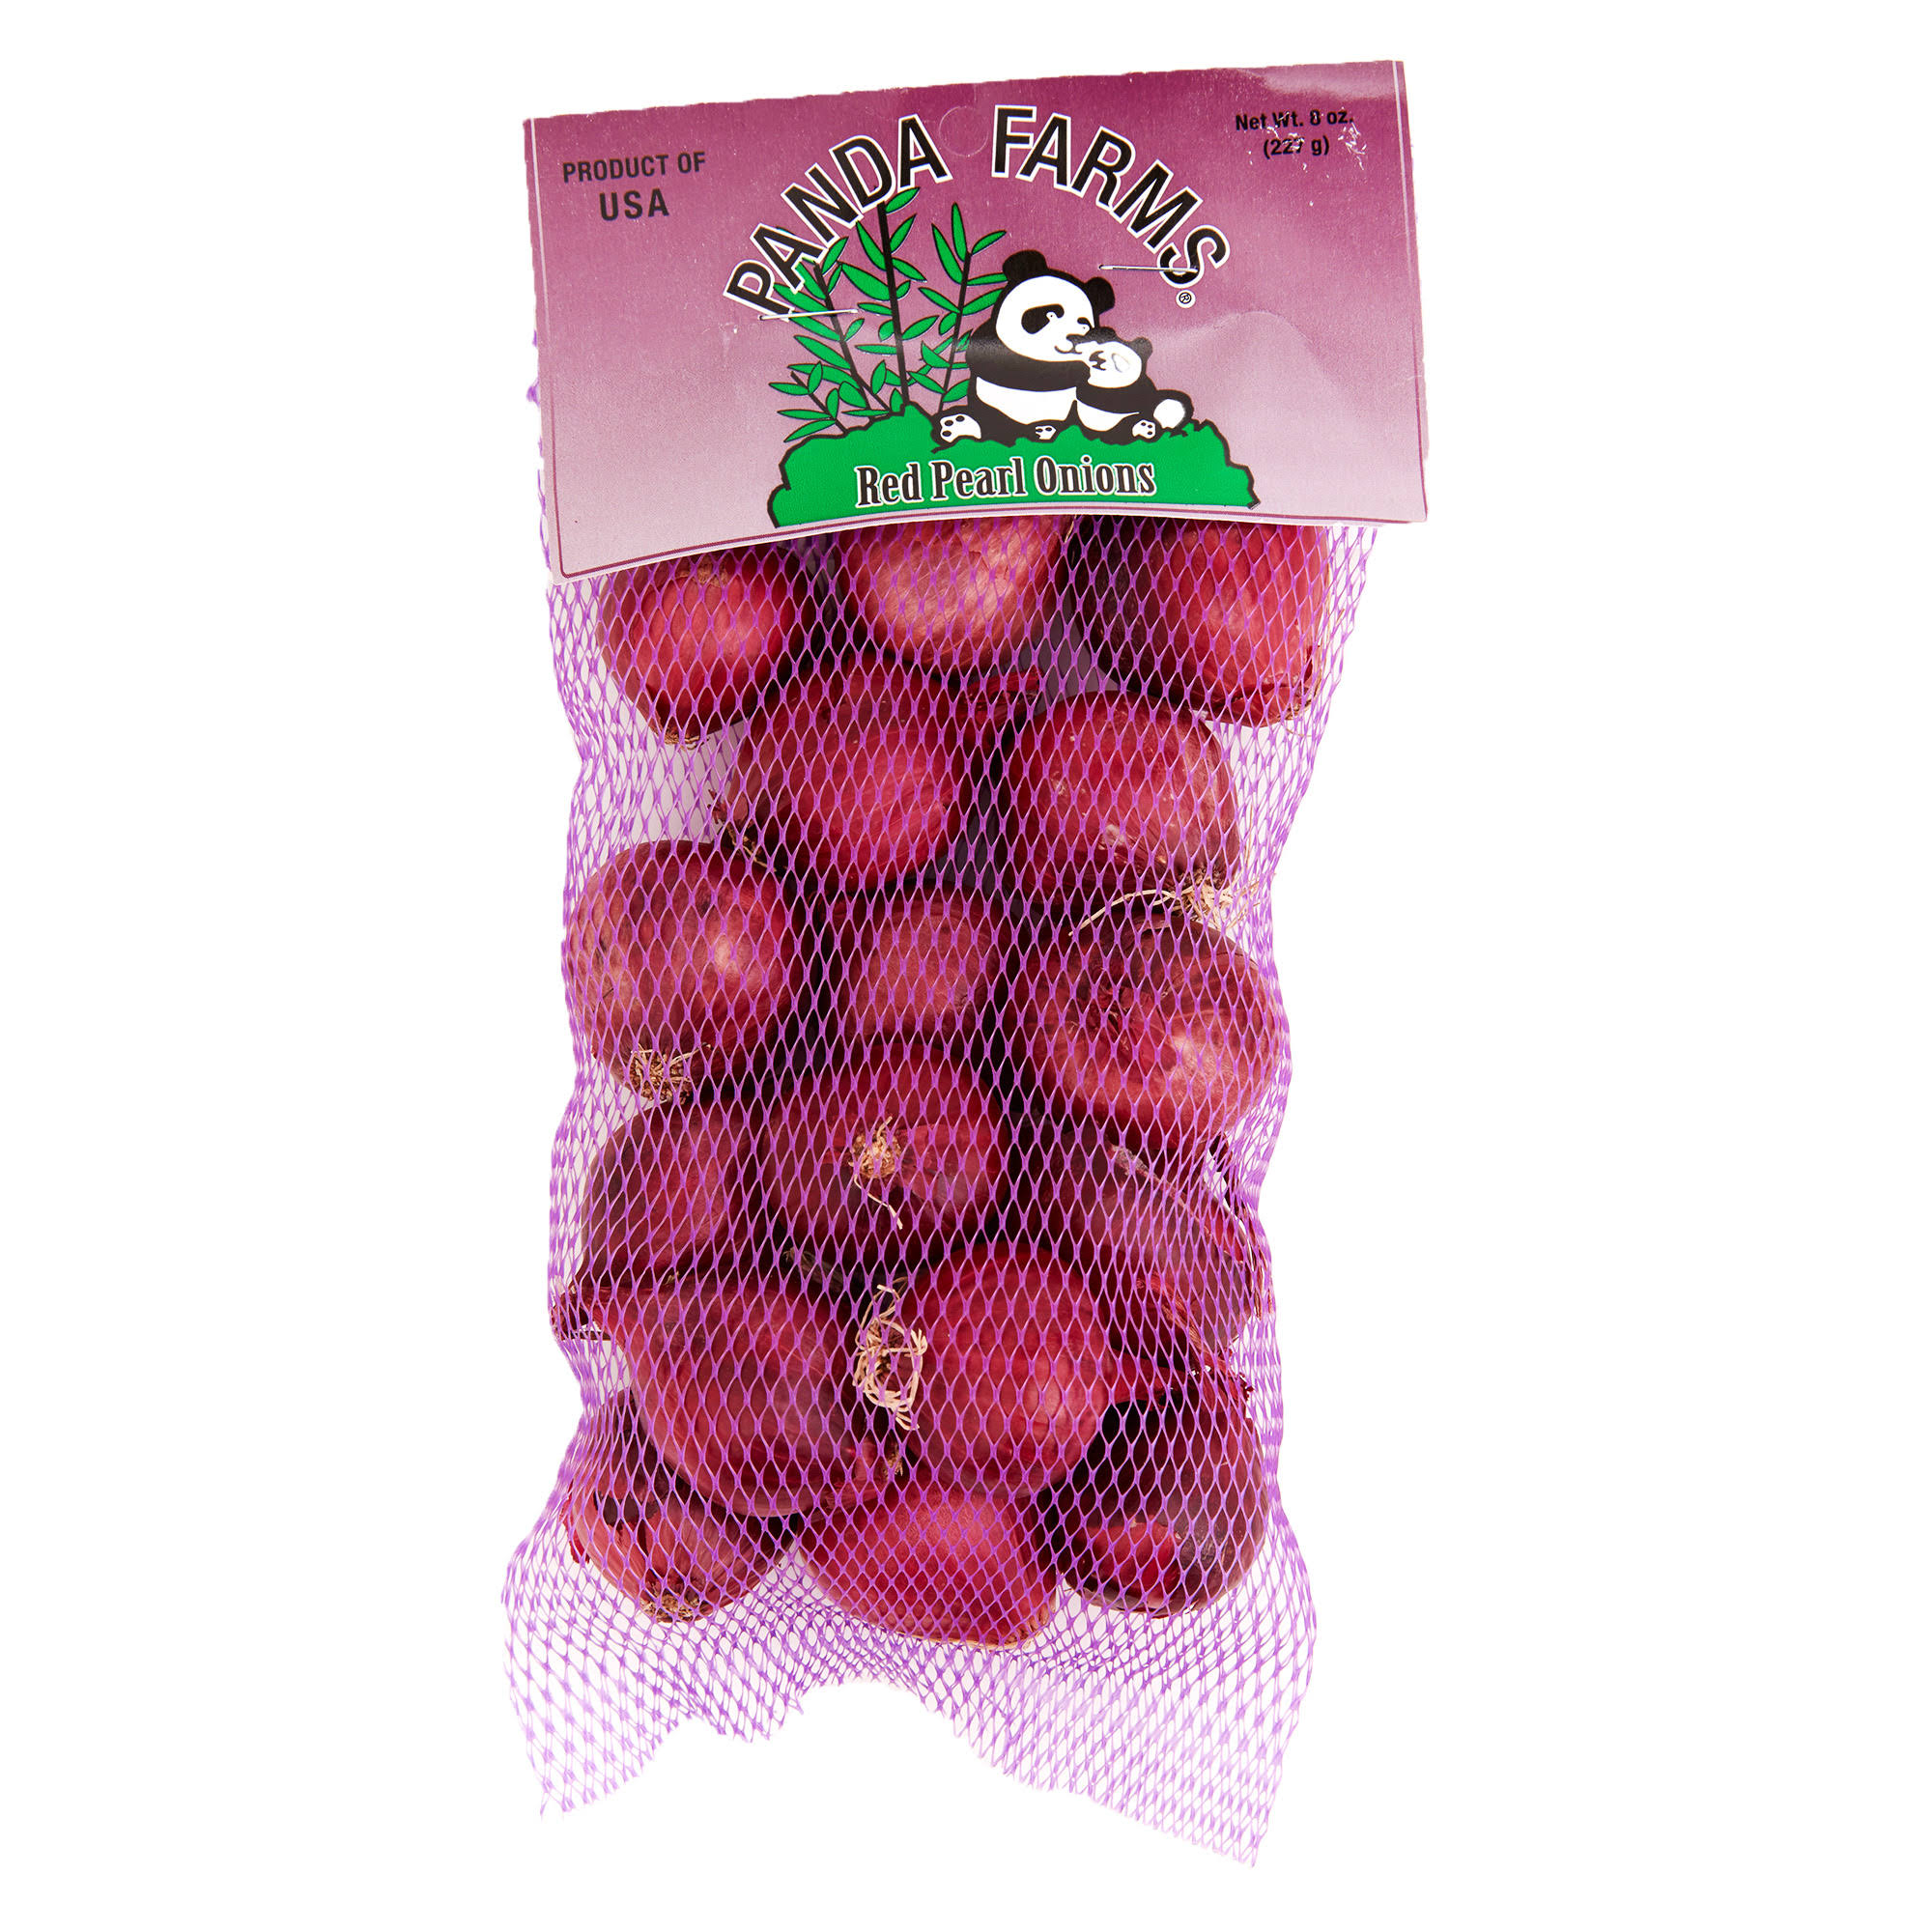 Red Onions - 2 Pounds - Riverside Foods - Delivered by Mercato